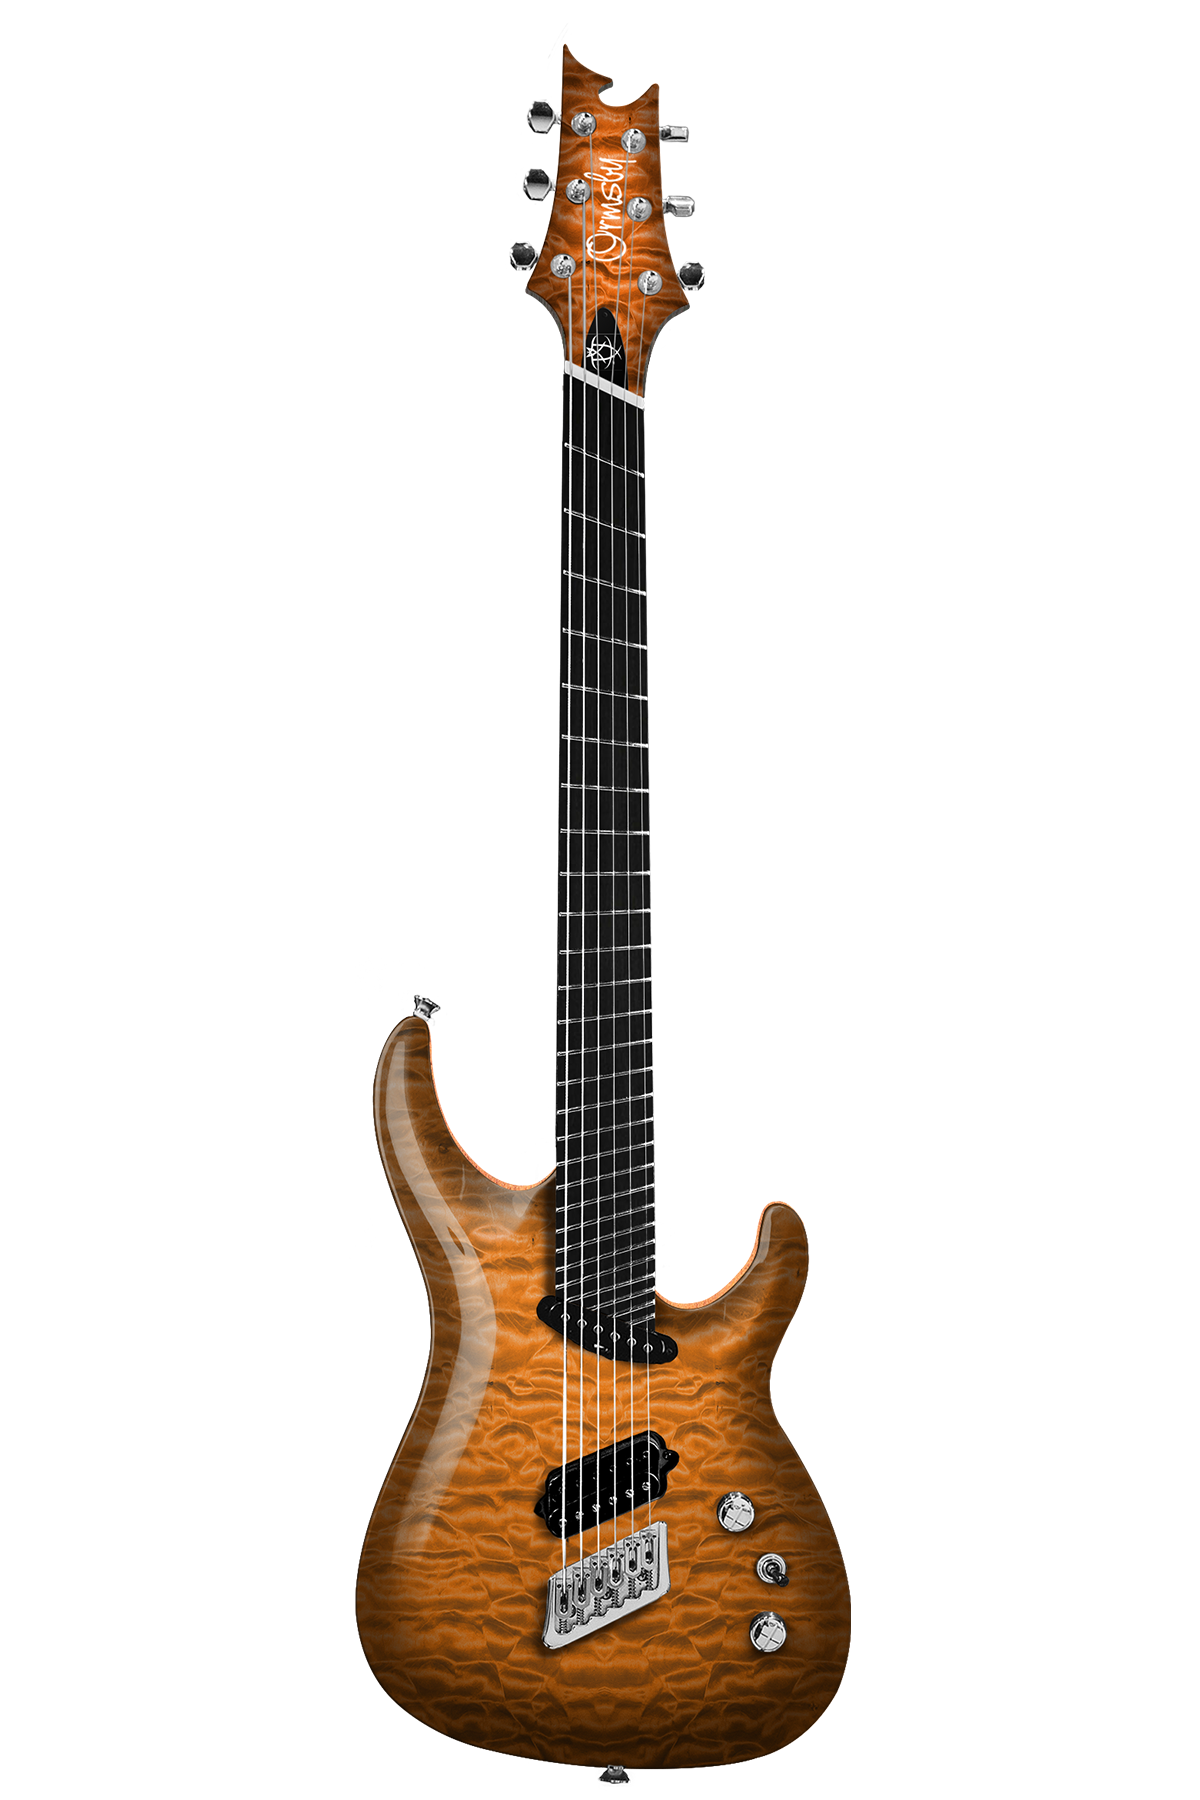 Ormsby Guitars Signature Series Rusty Cooley